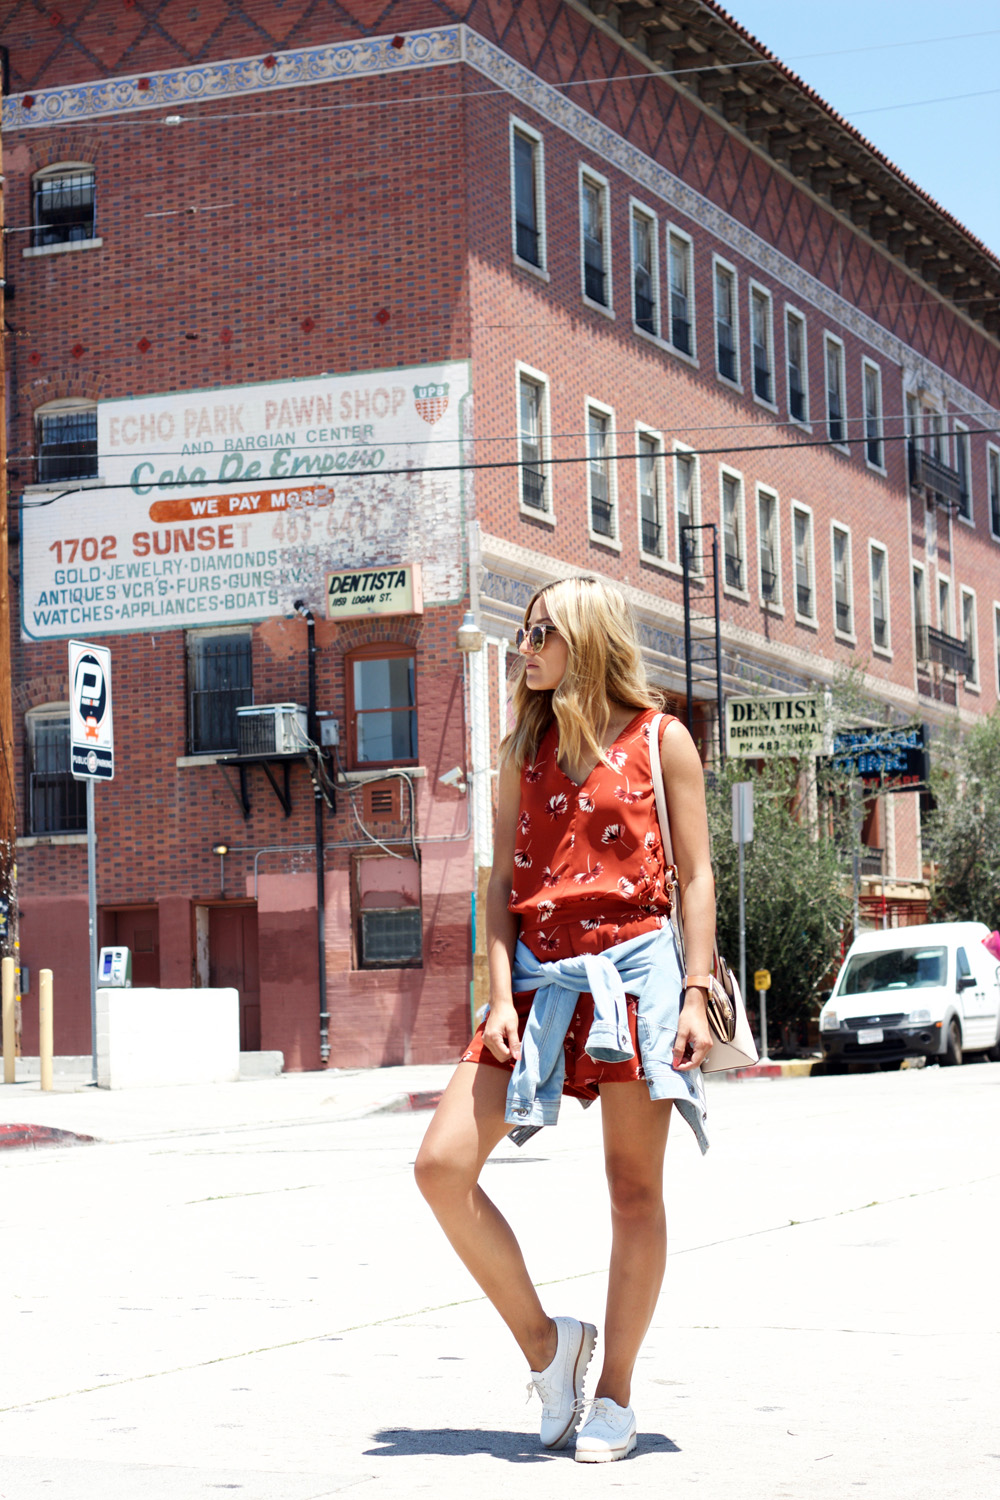 dynamite clothing, romper, floral, summer, melrodstyle, ootd, inspiration, outfit, street style, la blogger, latina blogger, mexican blogger, hispanic blogger, blogger, casual